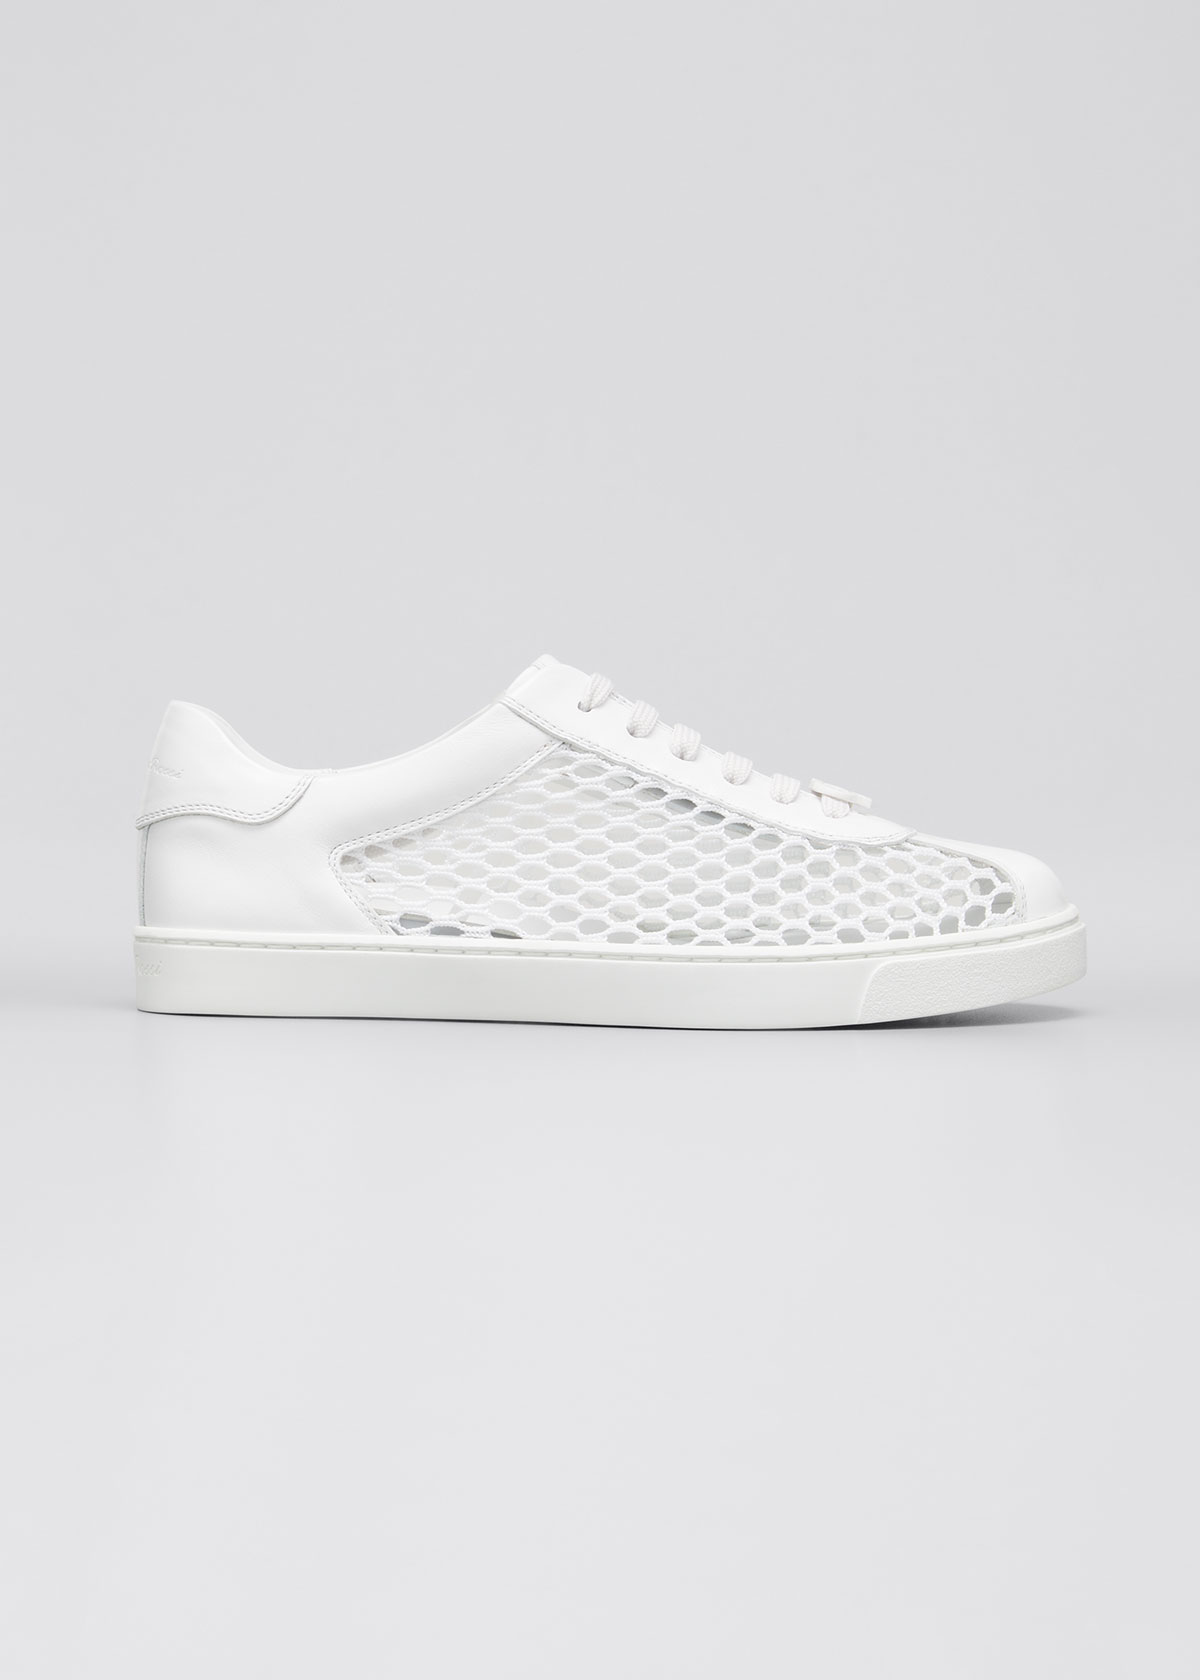 Gianvito Rossi Leathers MESH NET LOW-TOP SNEAKERS